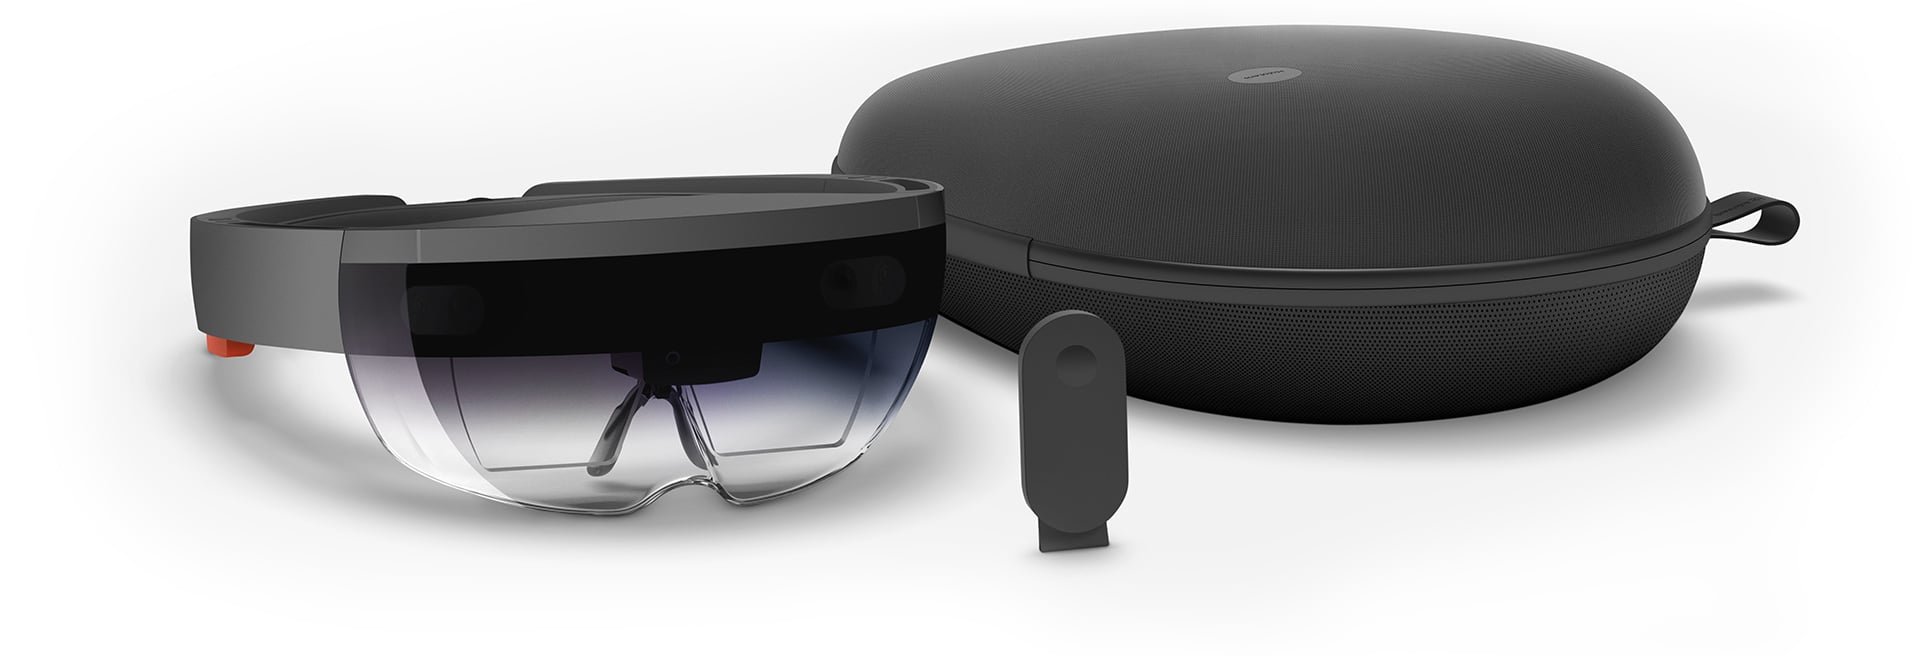 how to run unity build on hololens